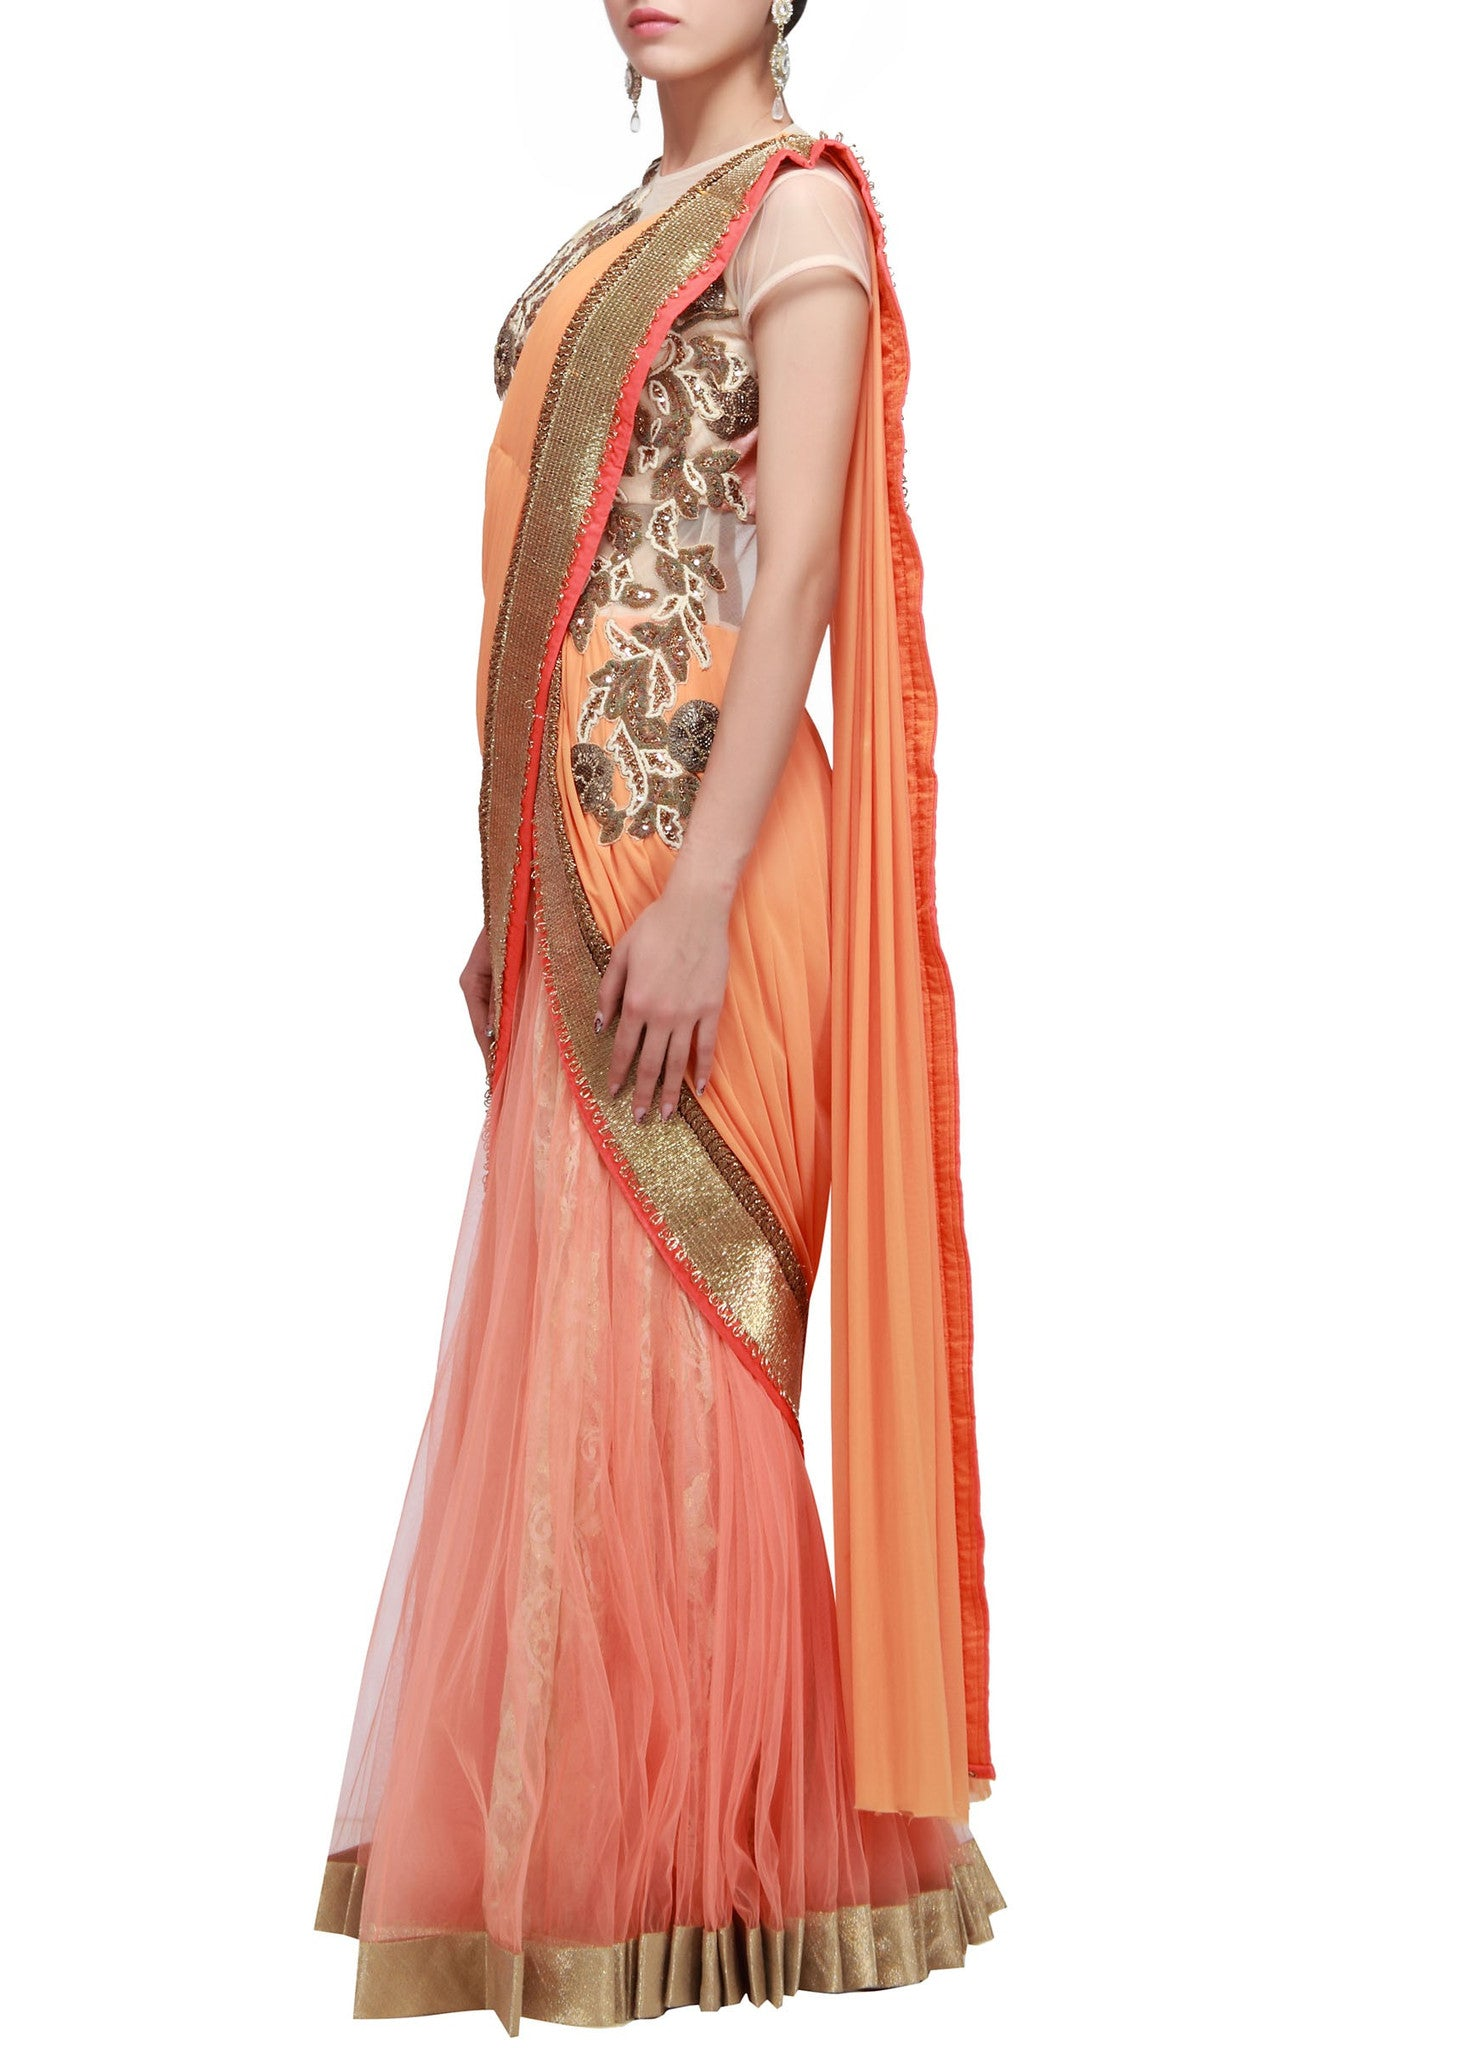 Peach color saree gown